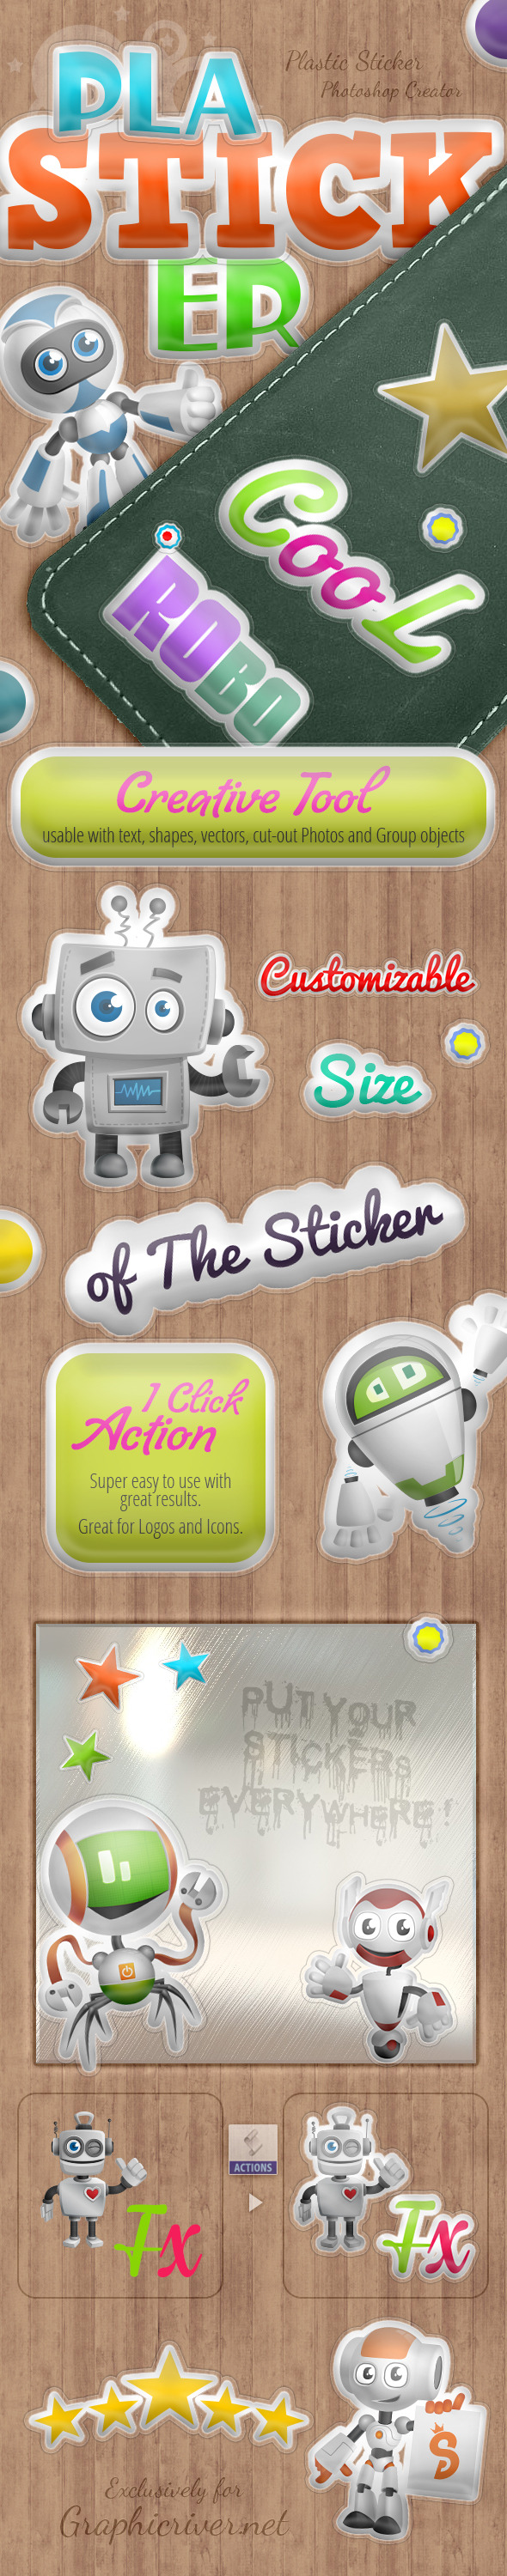 Plasticker - Photoshop Action - Actions Photoshop